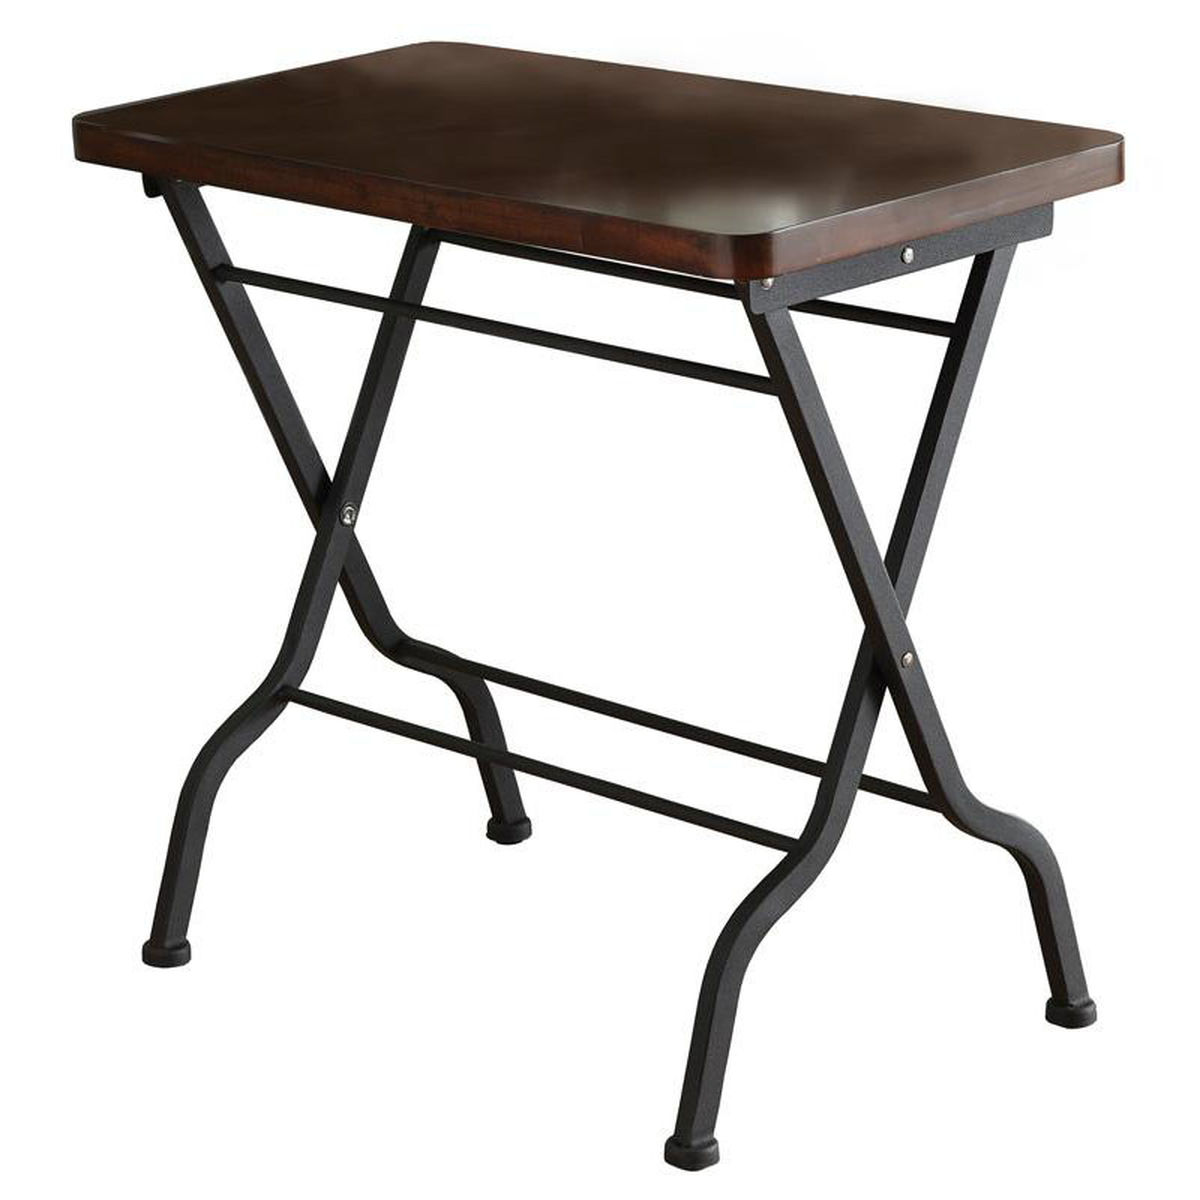 folding cherry accent table bizchair monarch specialties msp main metal our charcoal black coastal inspired lighting two tier end retro small white slim console drop leaf dining